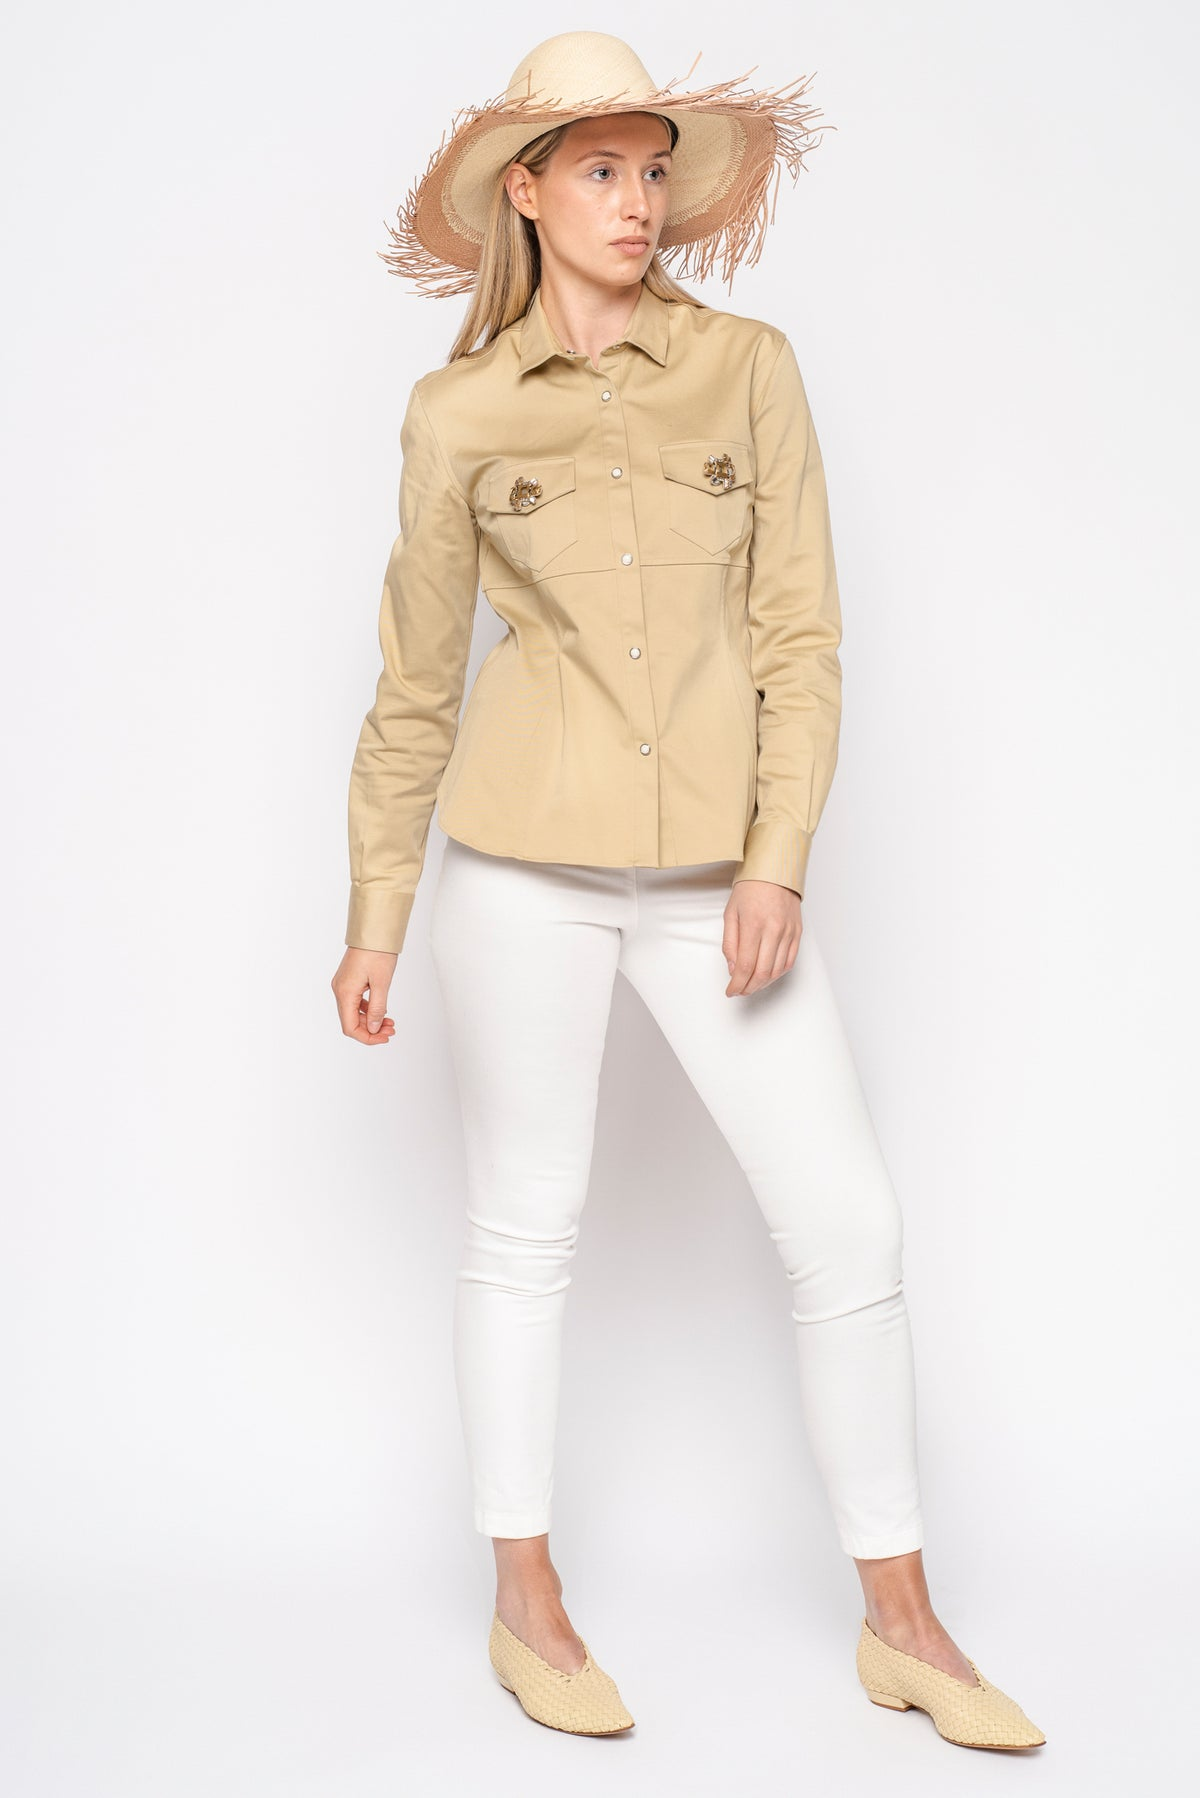 Ermanno Scervino Beige Cotton Safari Shirt with Embellished Pockets